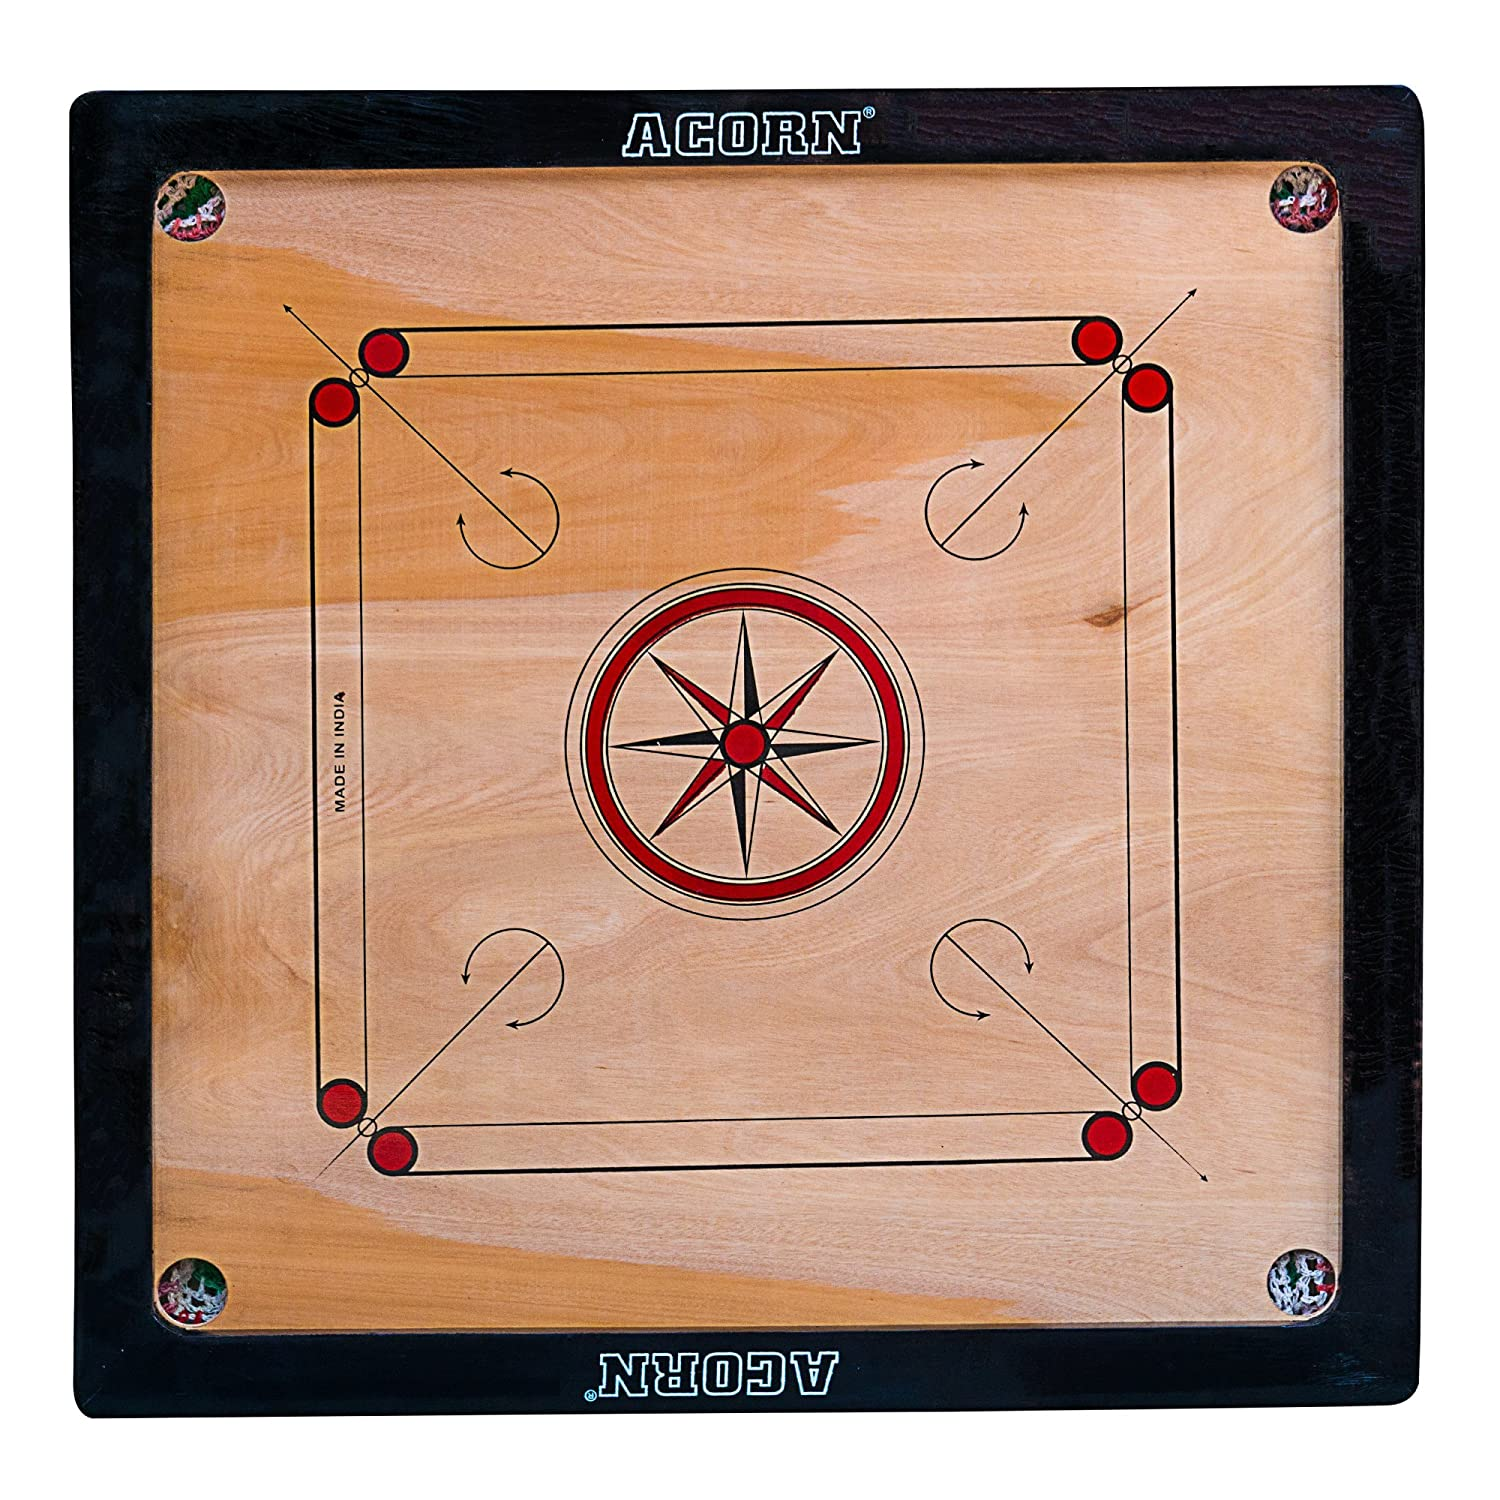 Acorn Large Size Carrom Board (32 x 32)